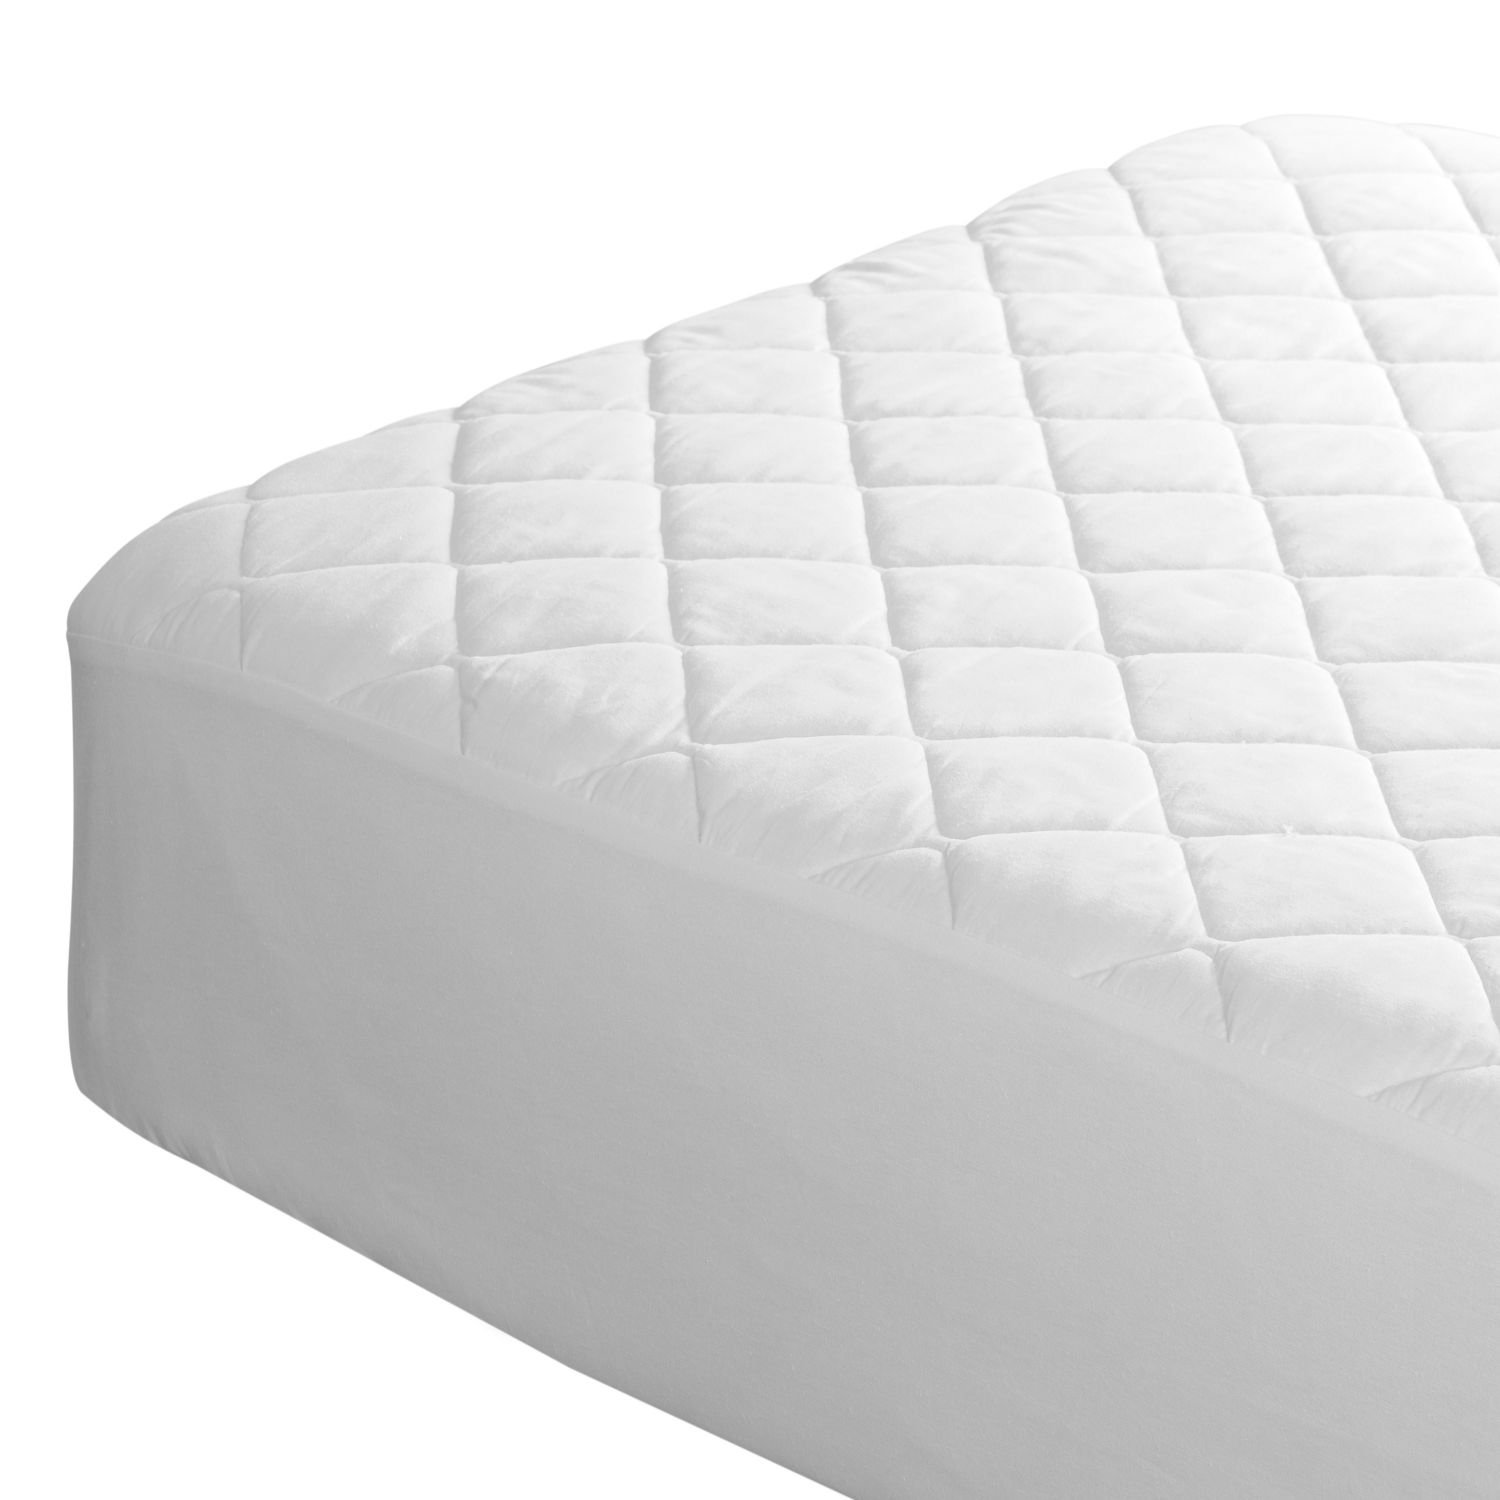 Easy Care Percale Diamond Quilted Mattress Protector Fitted 30cm/12in Deep Anti Dustmite & Non Allergenic Topper (King Bed) Linens World